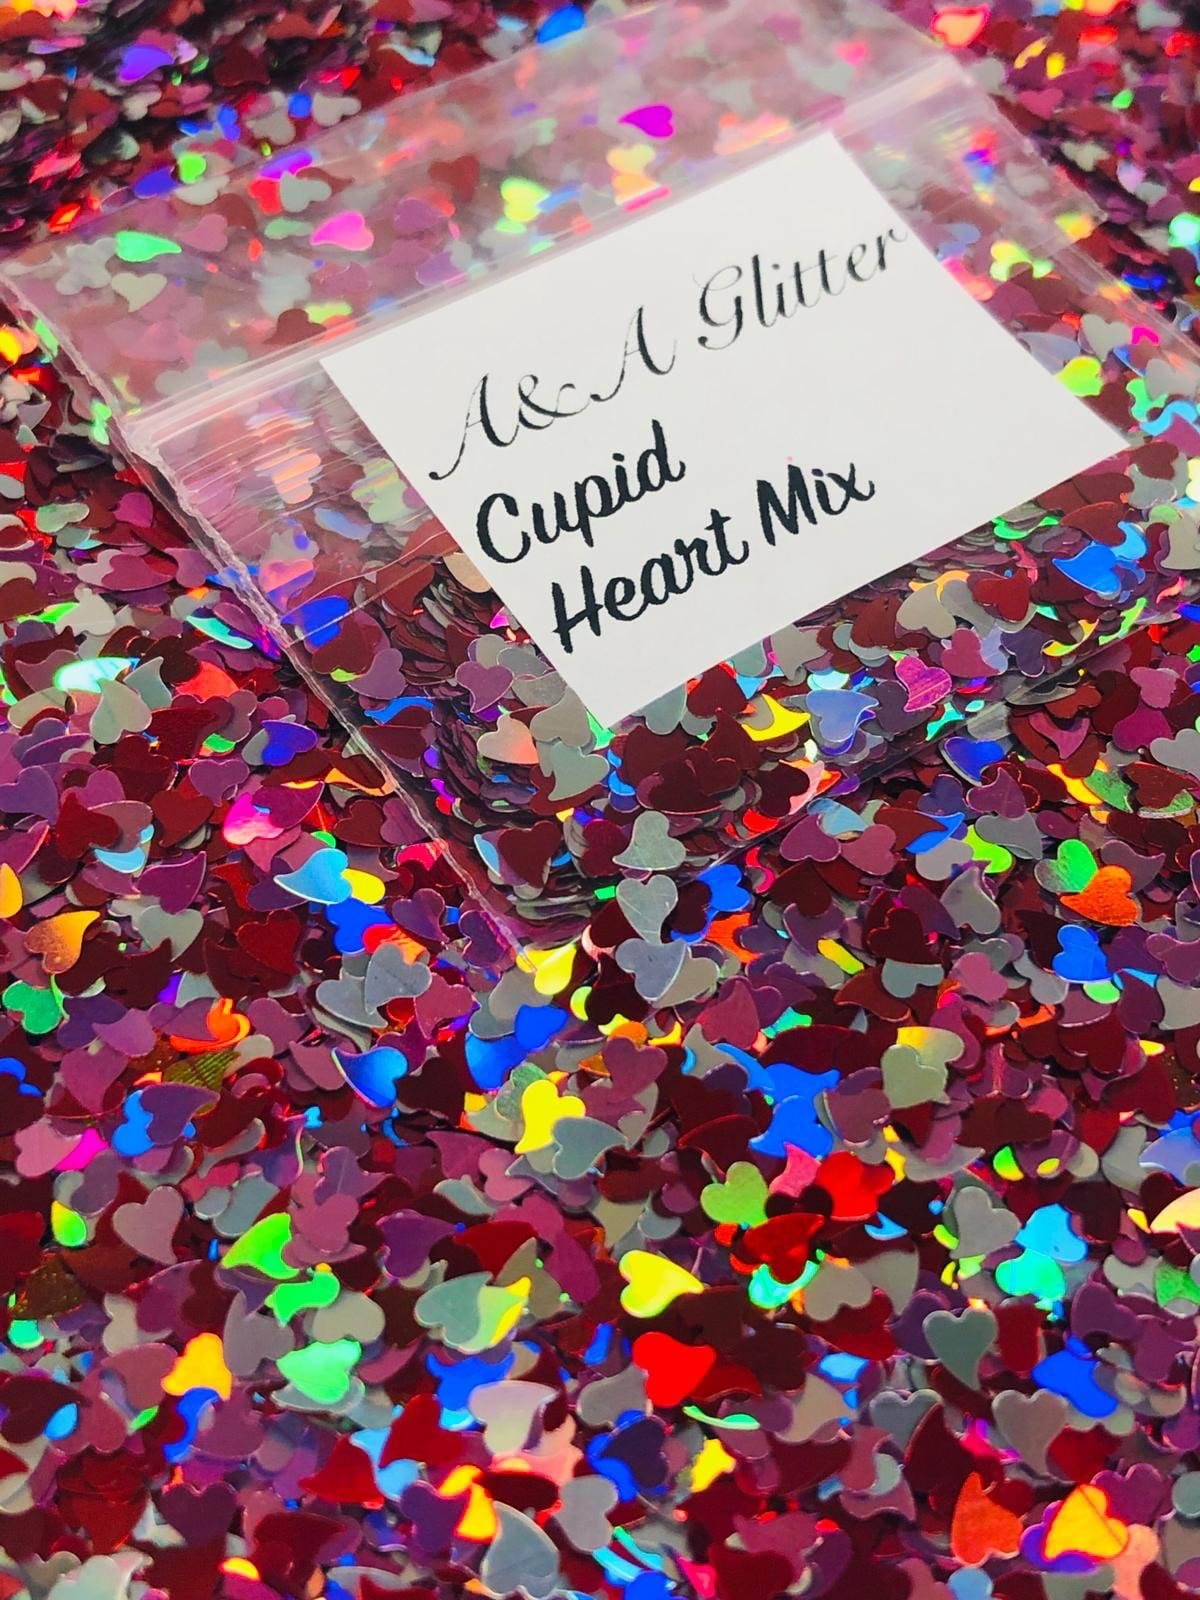 Cupid Heart Mix